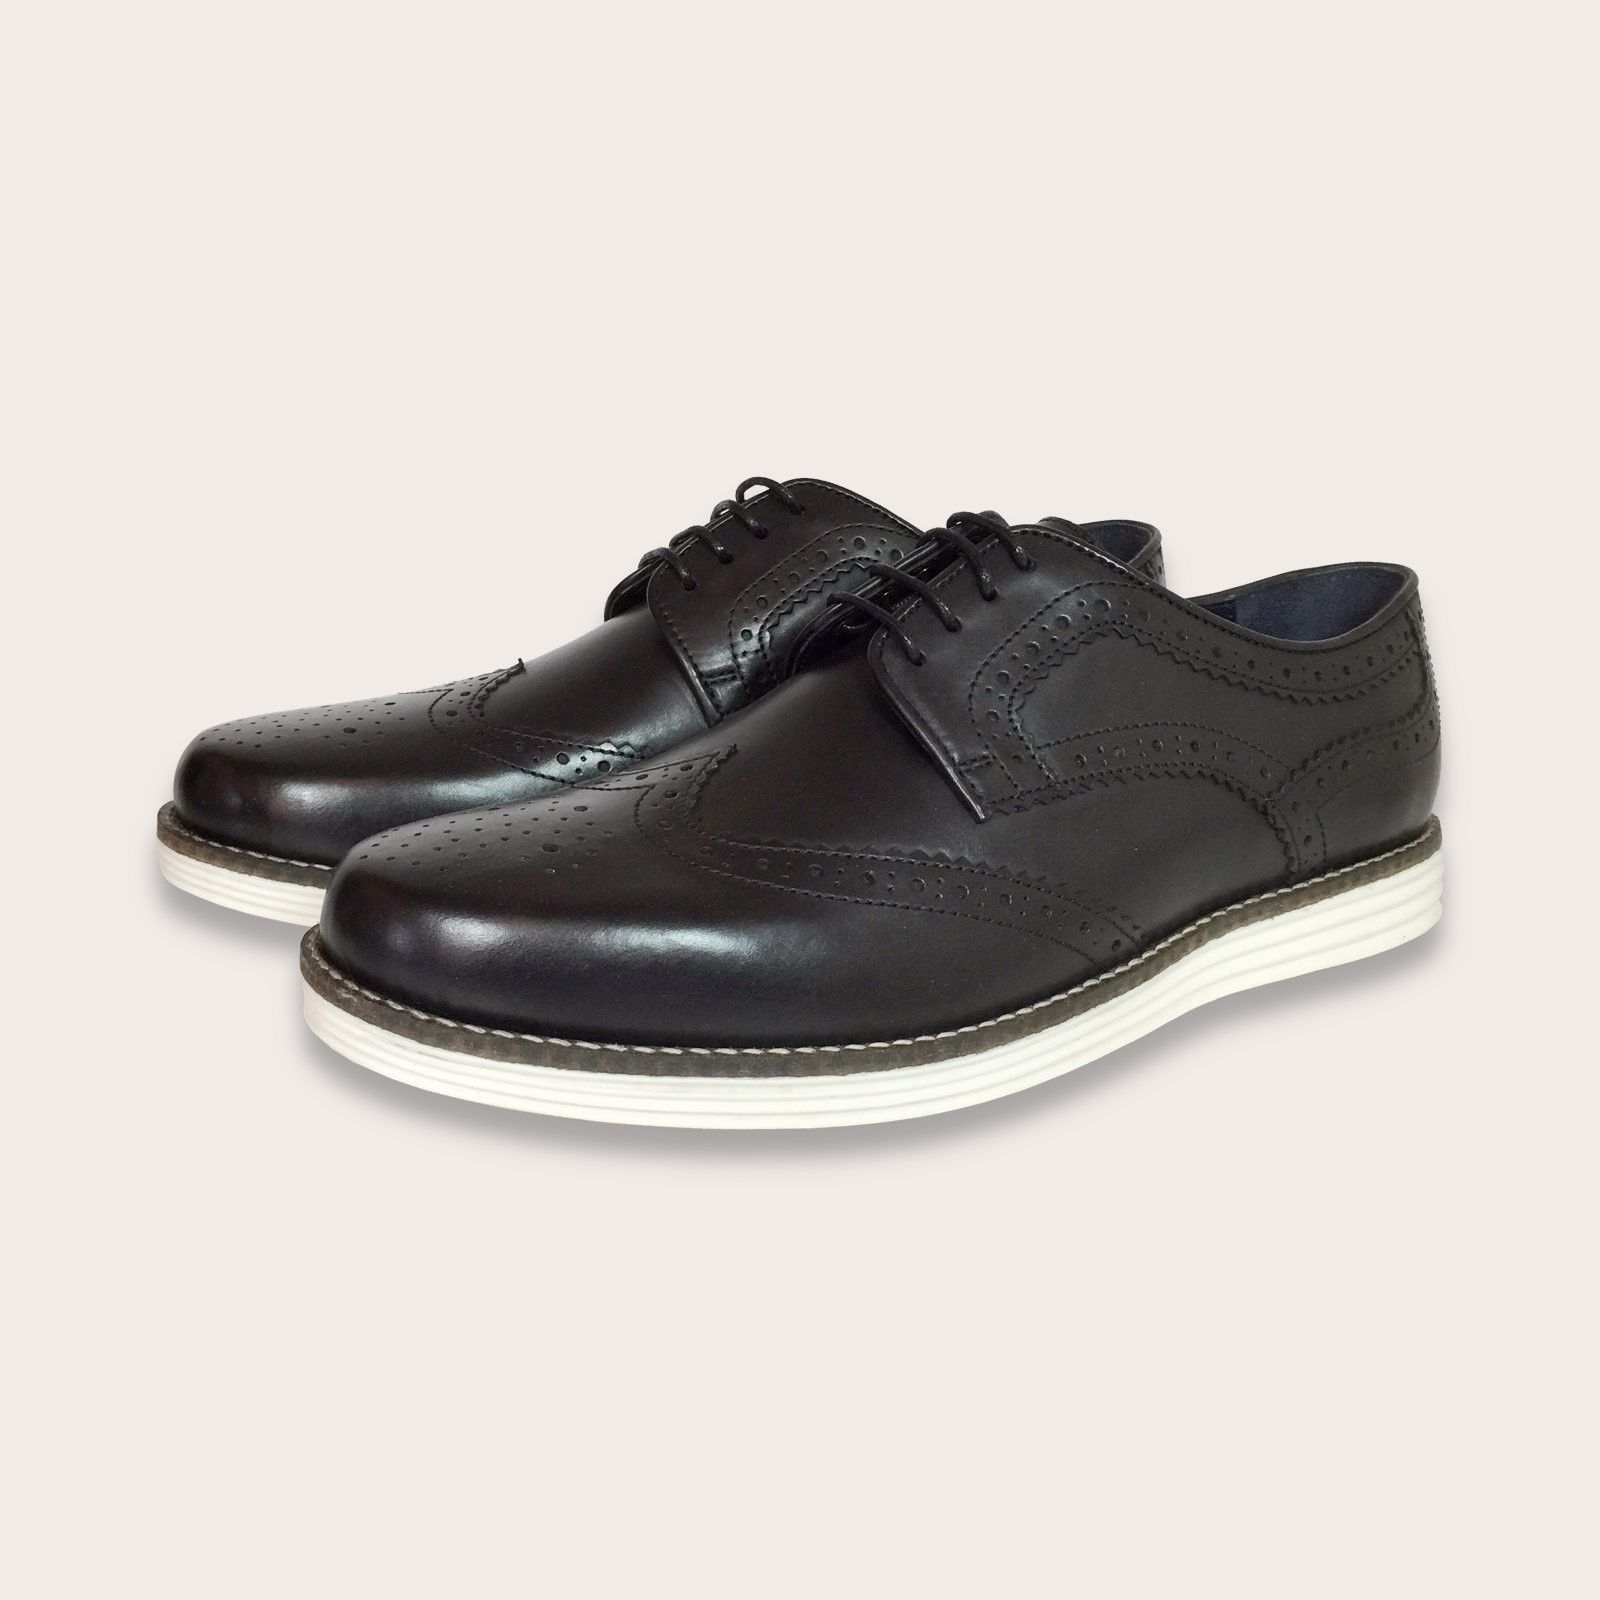 buttero | Casual leather shoes, Leather